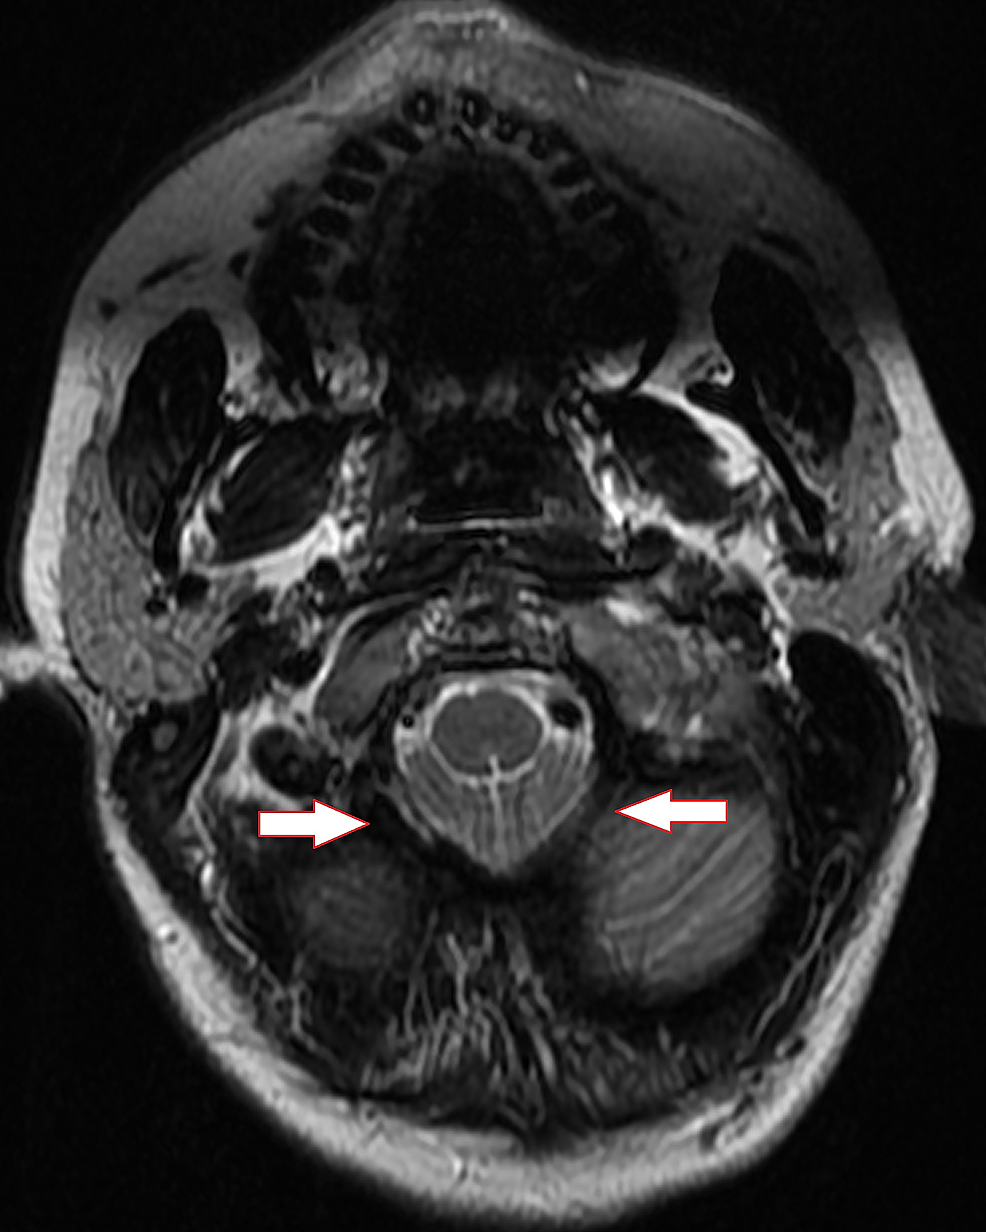 Axial-T2-cervical-spine-MRI-at-the-skull-base-demonstrating-crowding-of-the-foramen-magnum-and-inferior-descent-of-the-cerebellar-tonsils